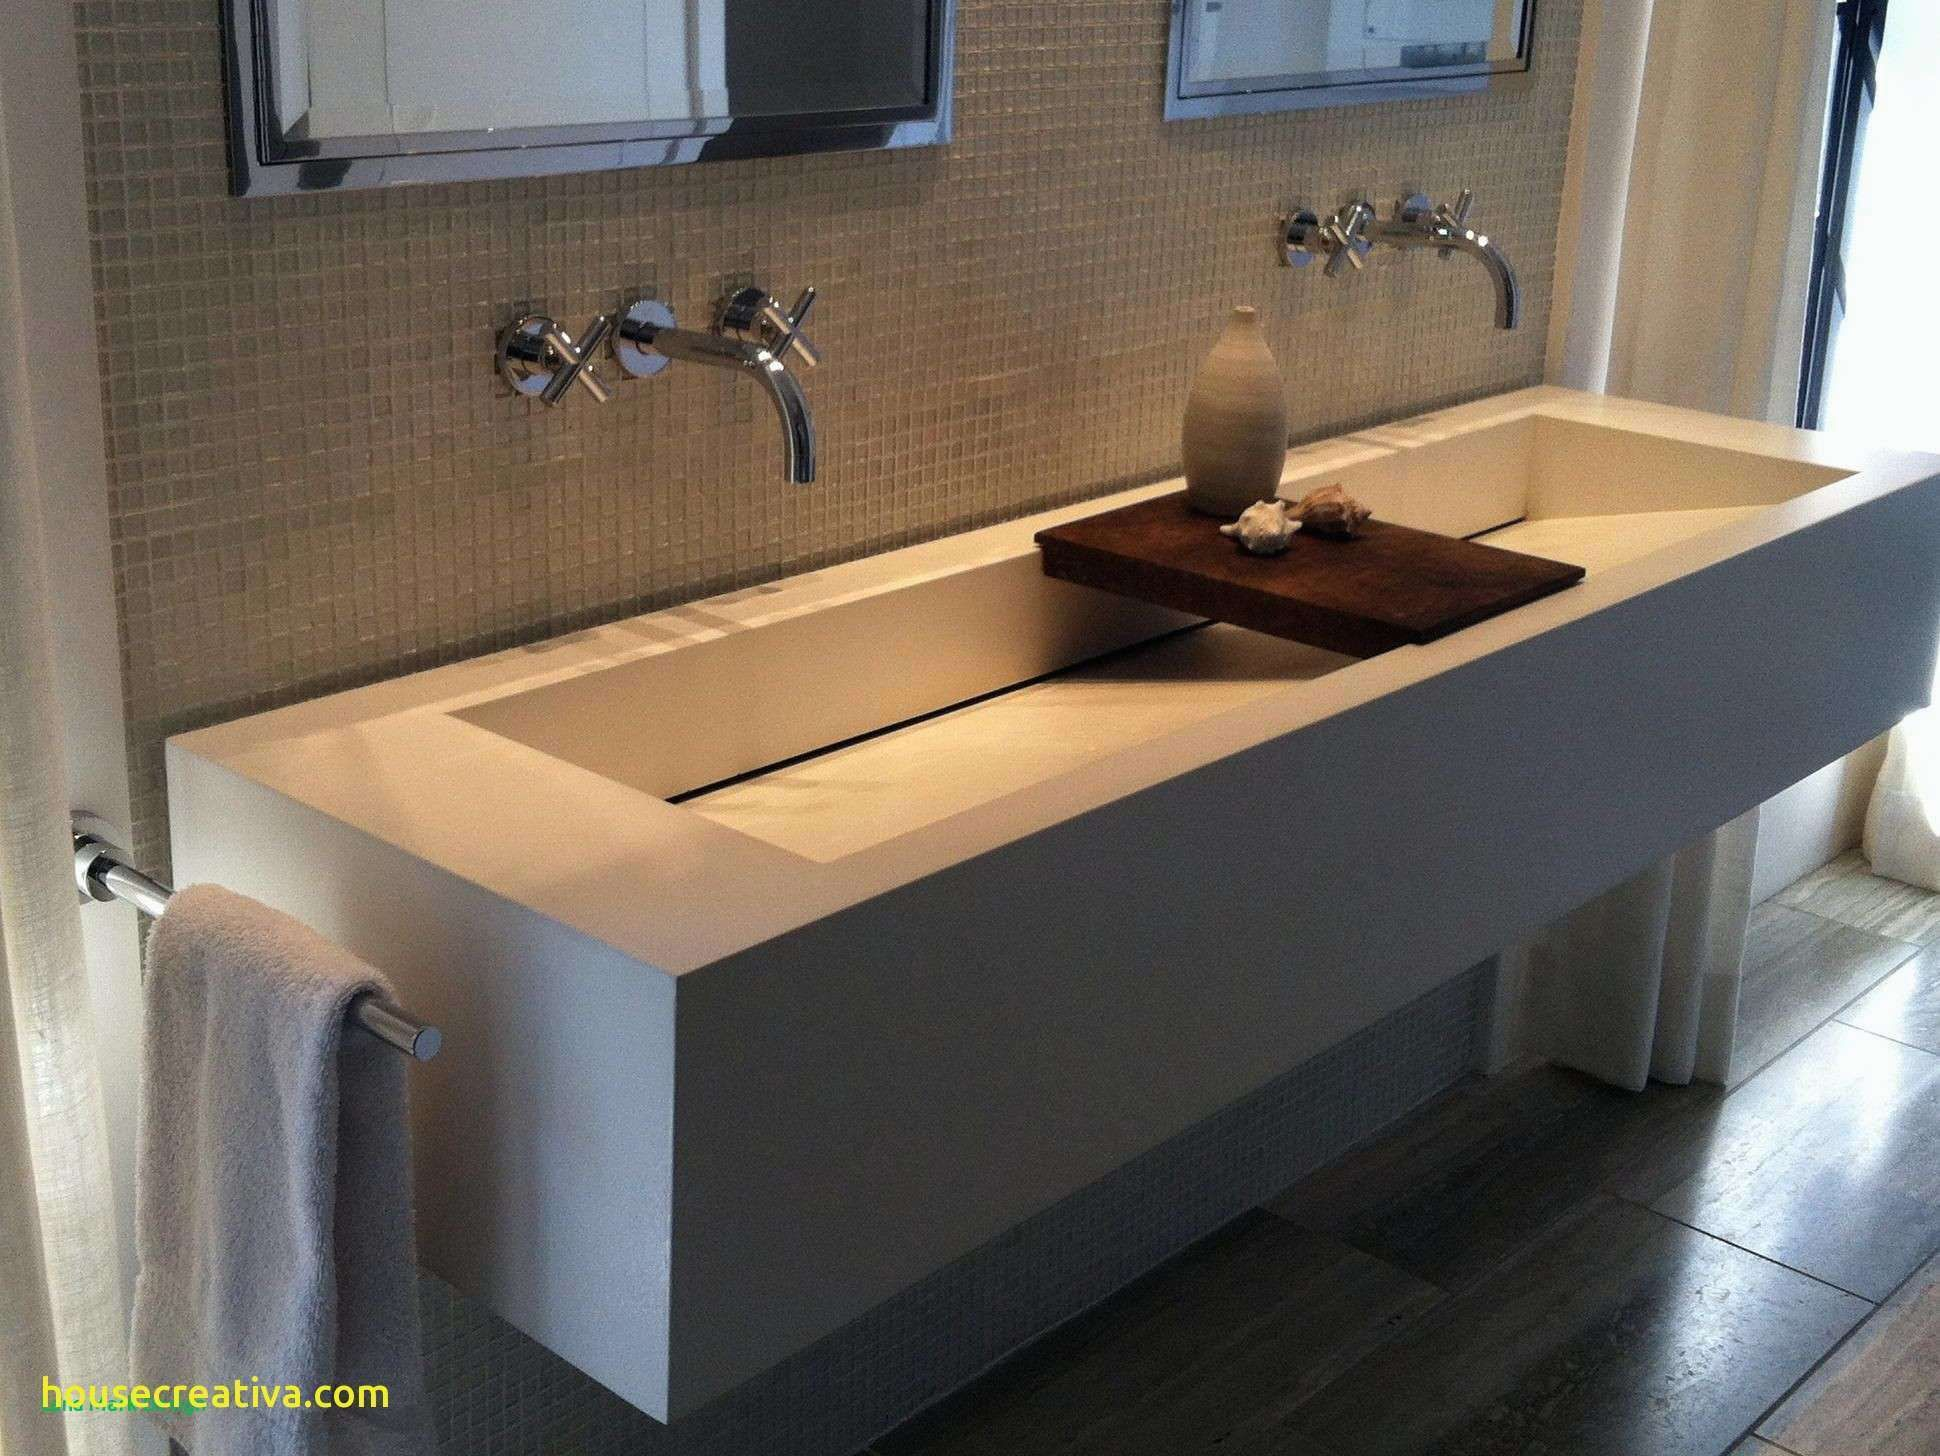 Double Faucet Trough Sink White Ceramic Undermount On Black Solid Stunning Bathroom With Faucets Photos Bathroom Trends Big Bathroom Designs Bathrooms Remodel